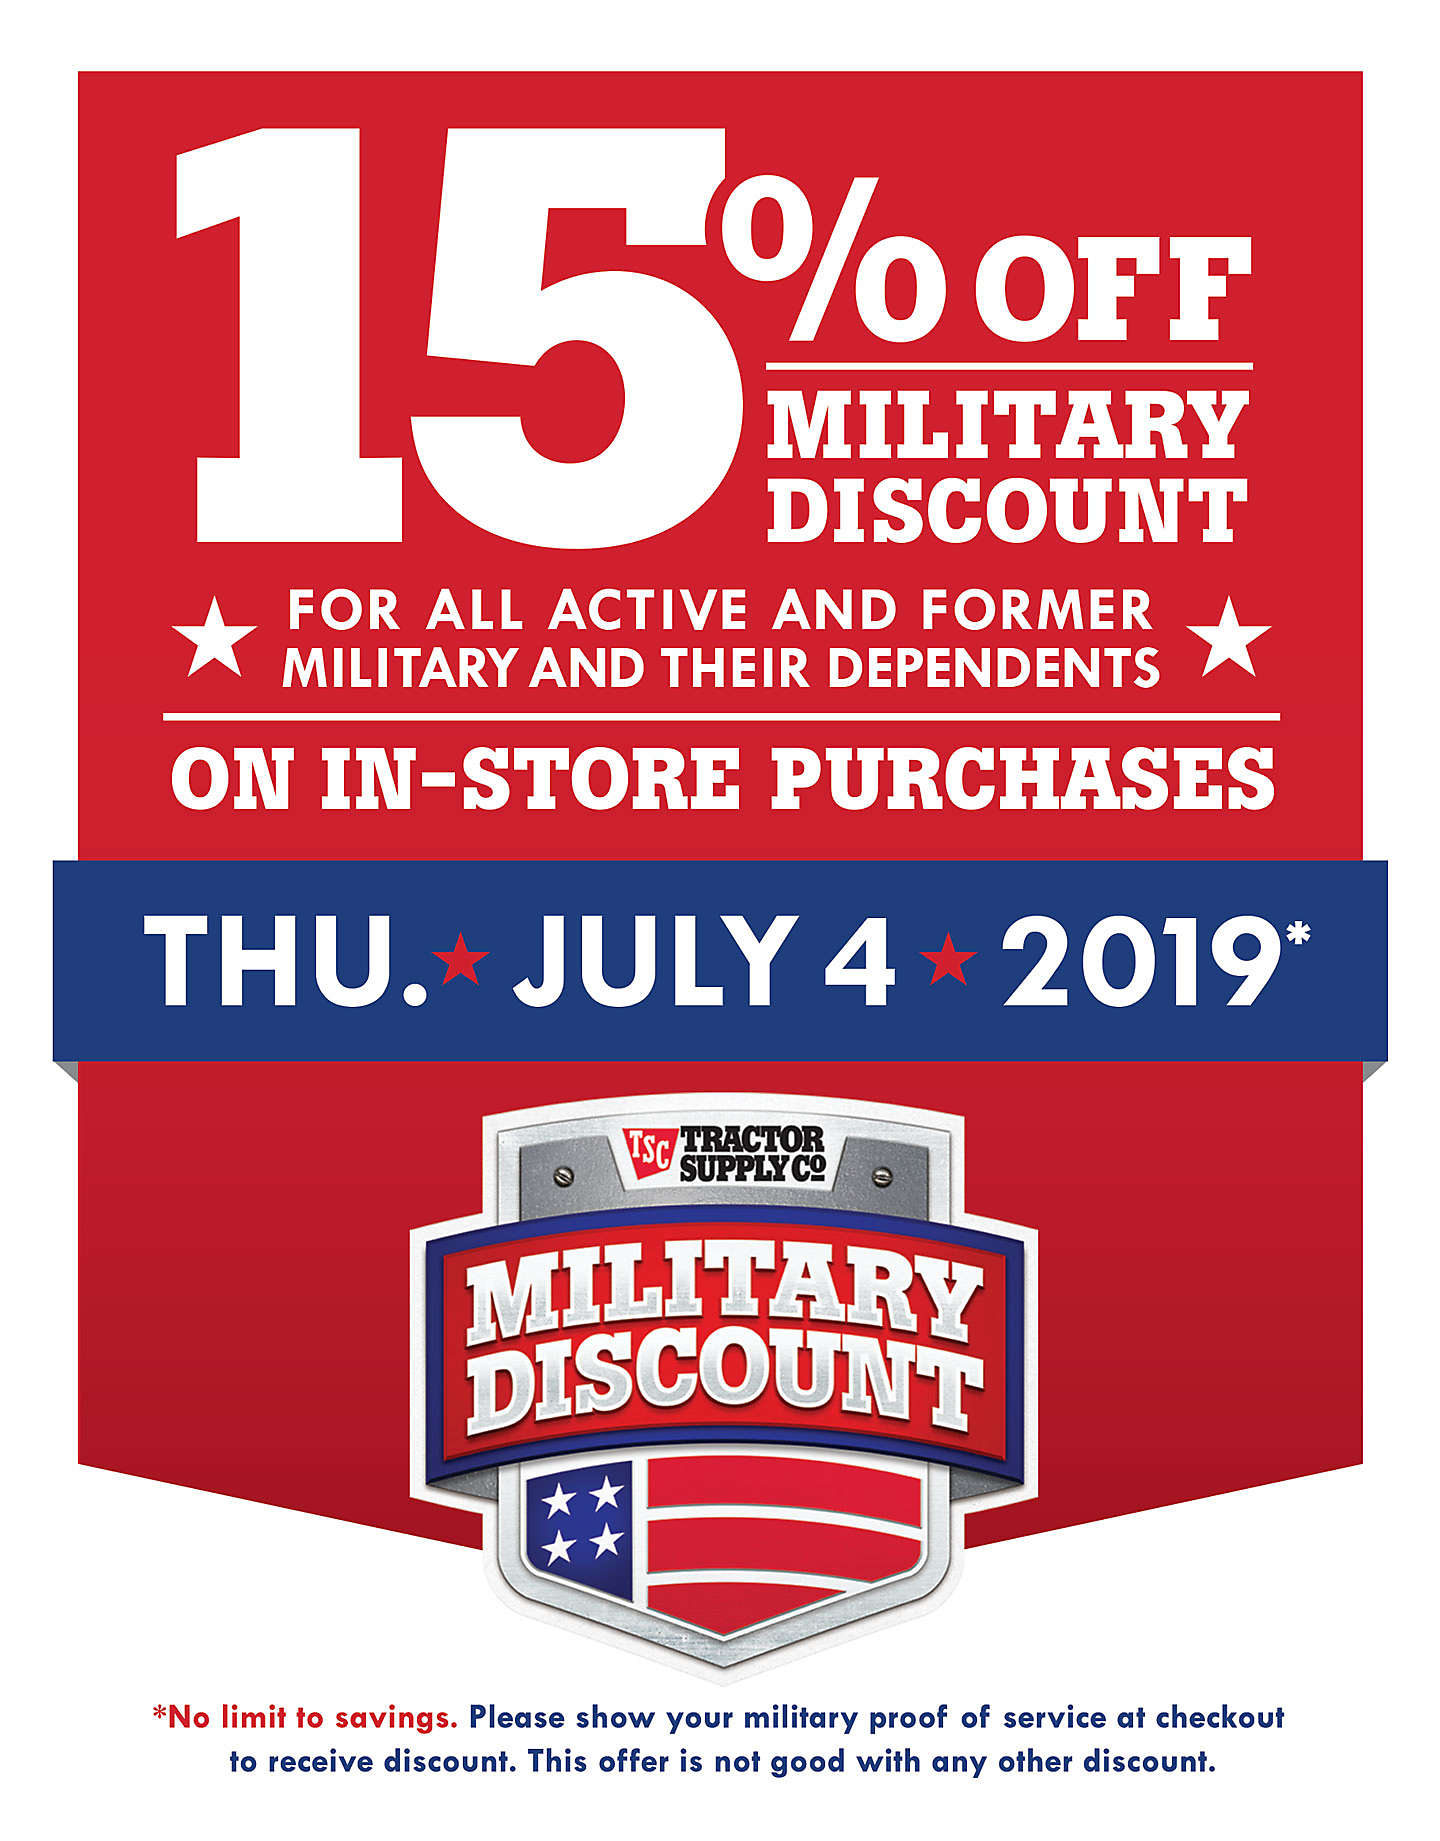 15% Military Discount for all active and former military and their dependents. In-store purchases, July 4, 2019.